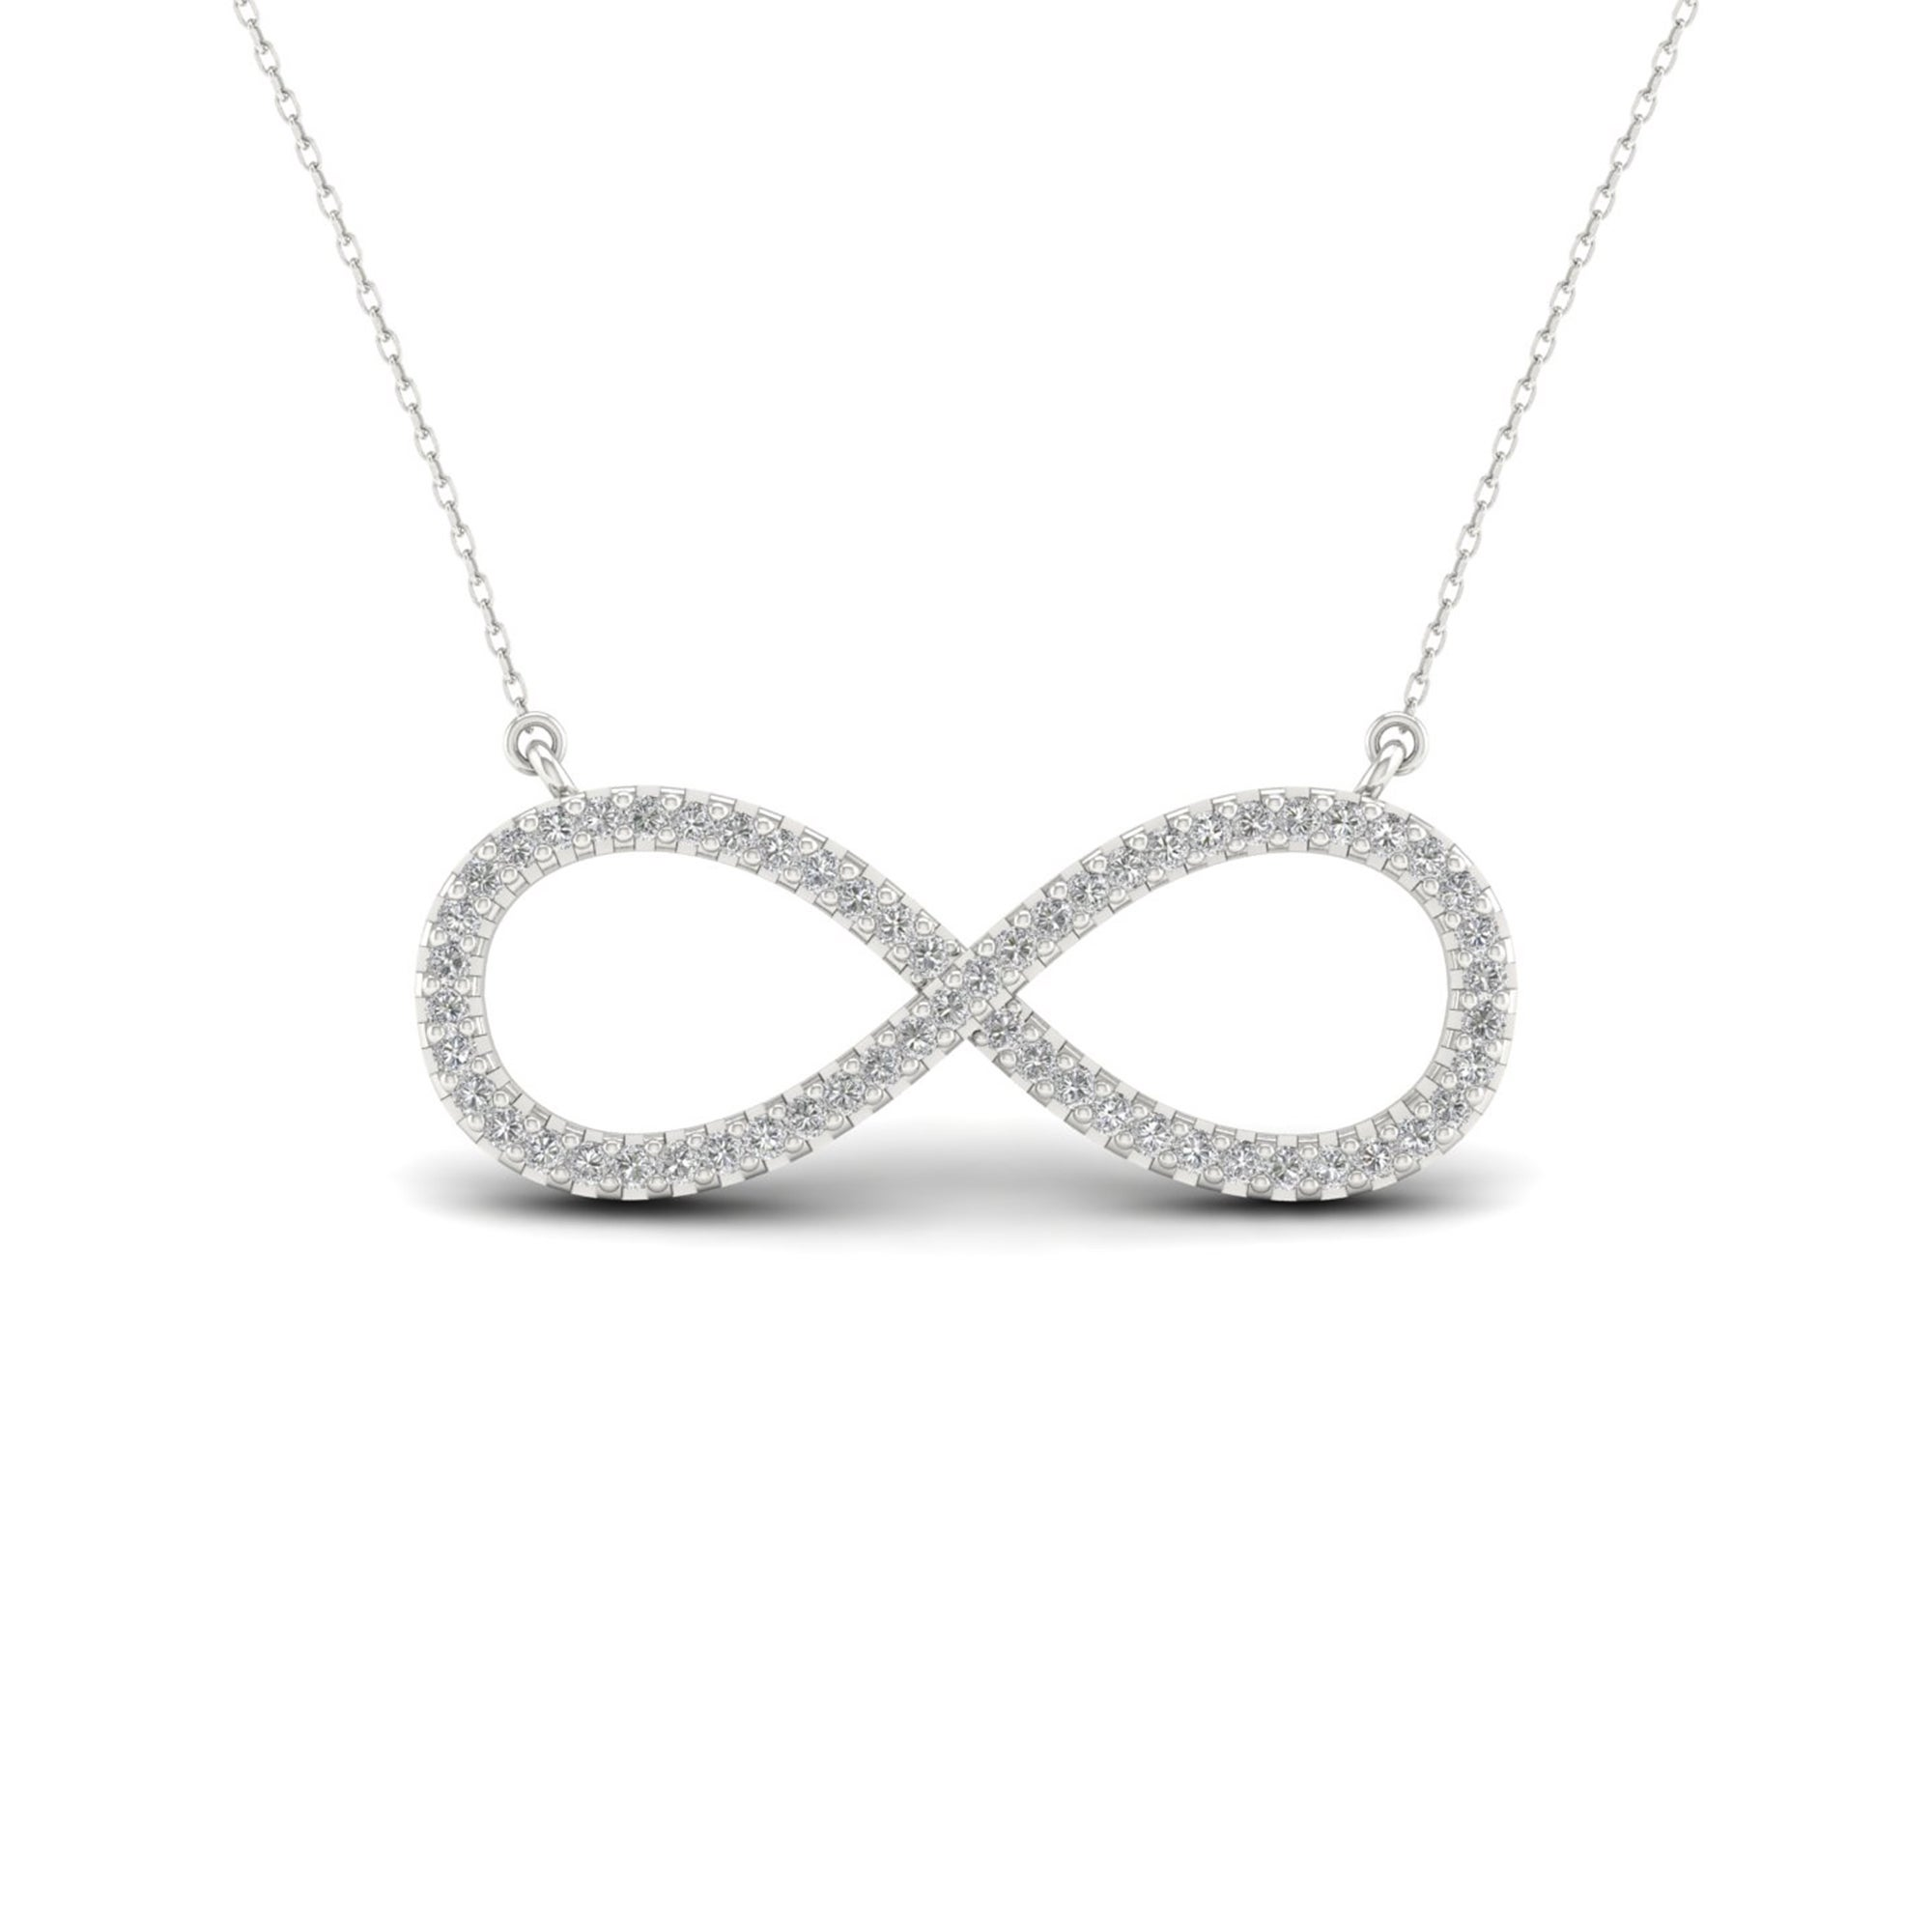 chain all jewelry necklace on minimalist silver mother day product original sterling s infinity